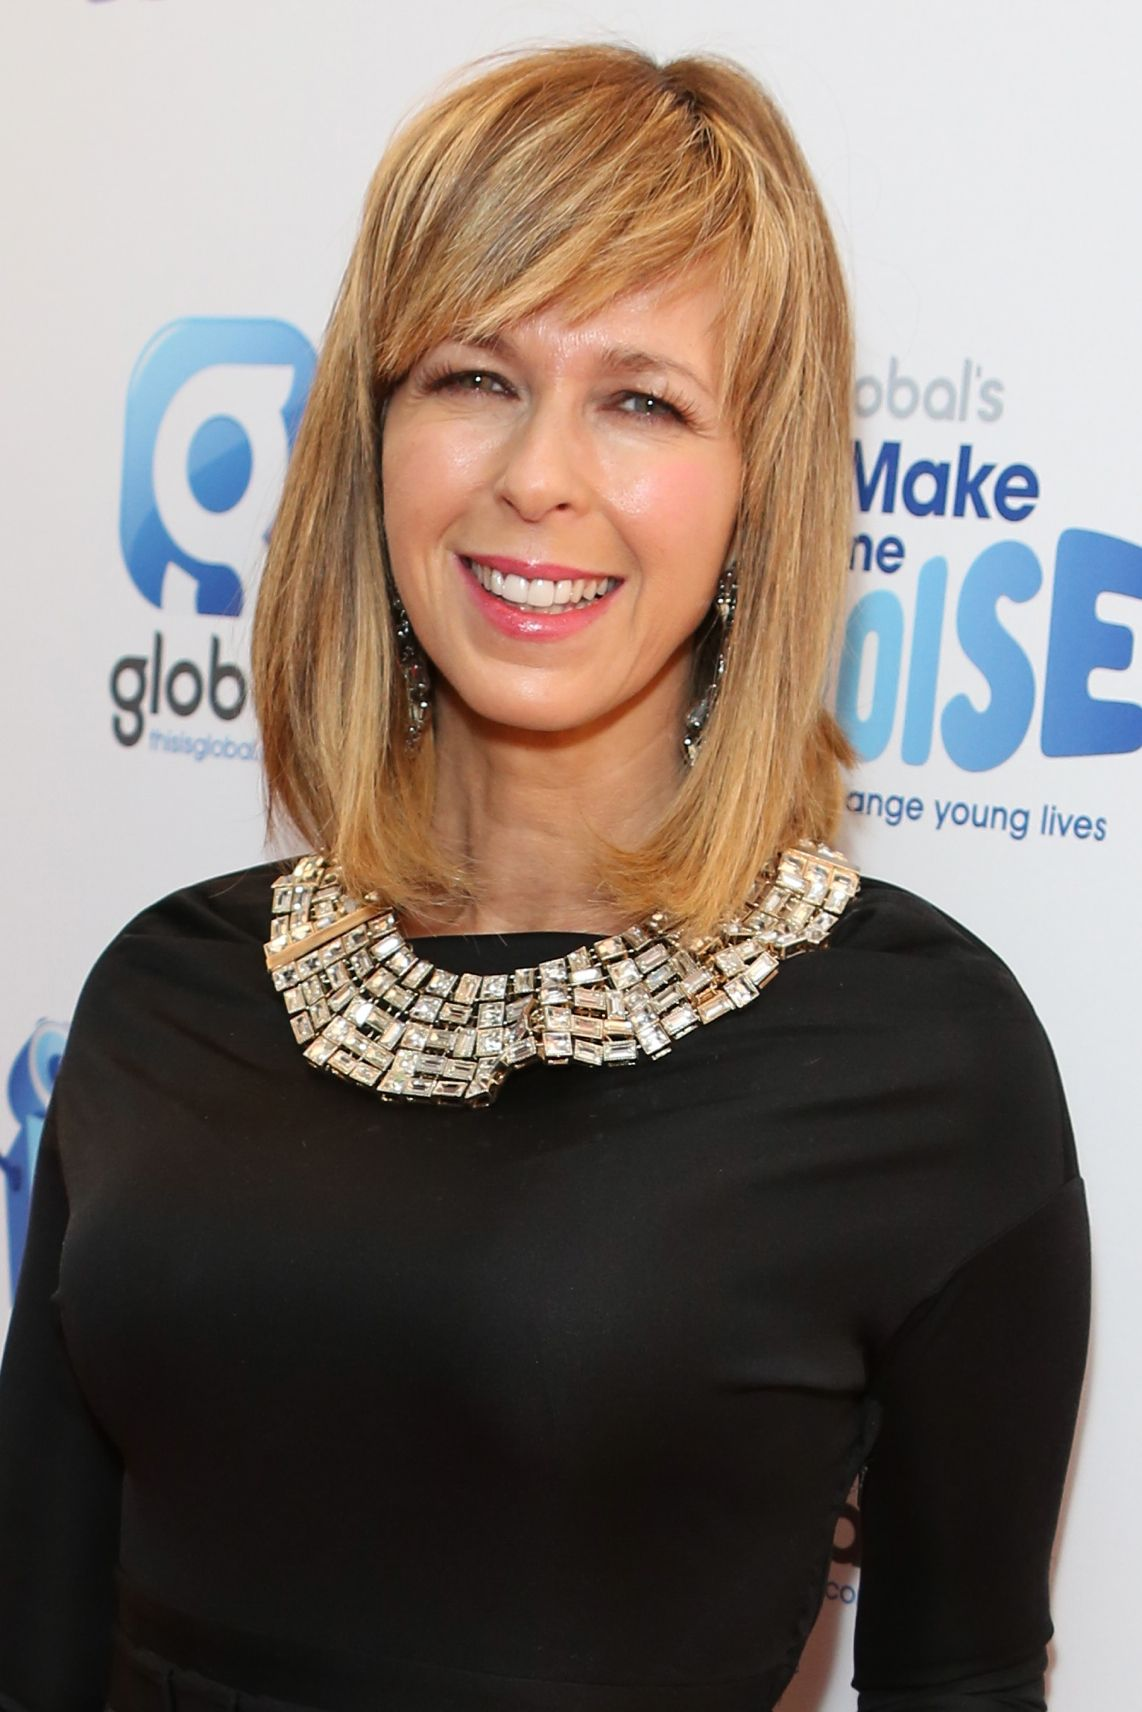 Kate Garraway Global Make Some Noise Event in London